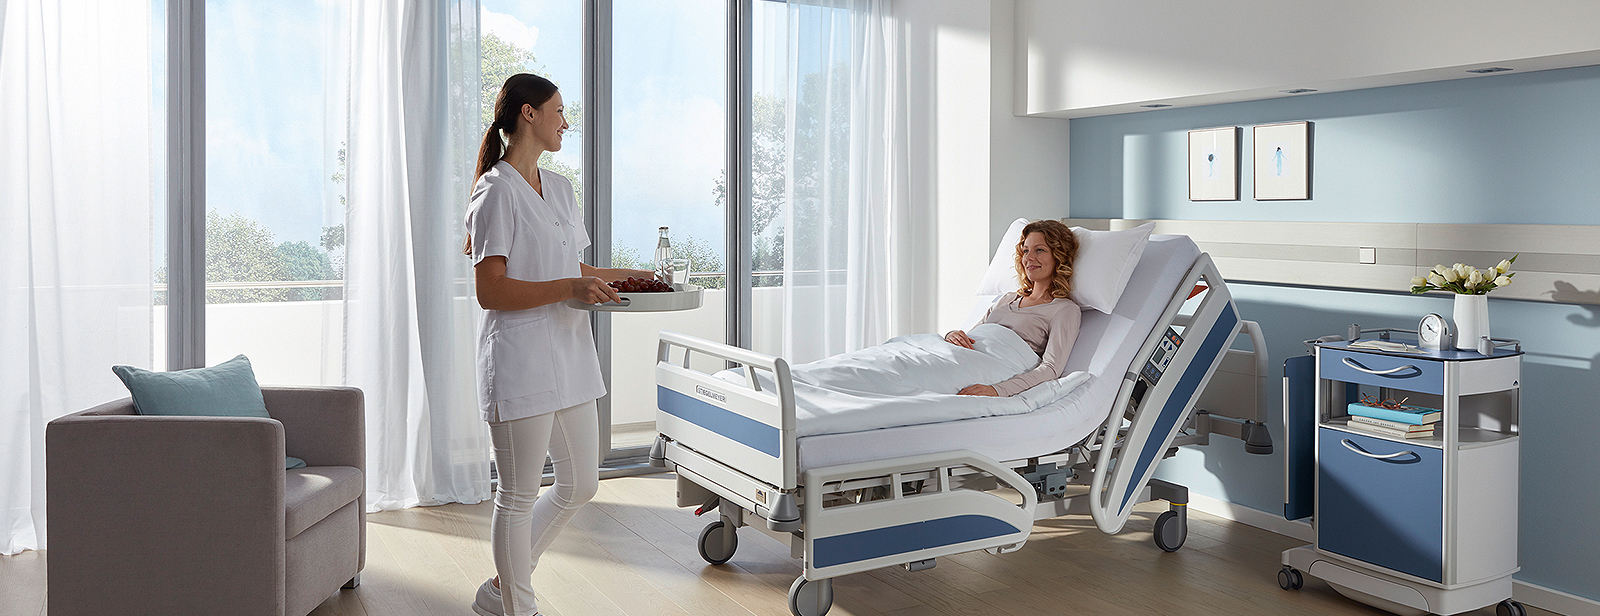 Brilliant Hospital Beds For Home Top Brands And Buying Guide For 2019 Home Interior And Landscaping Mentranervesignezvosmurscom